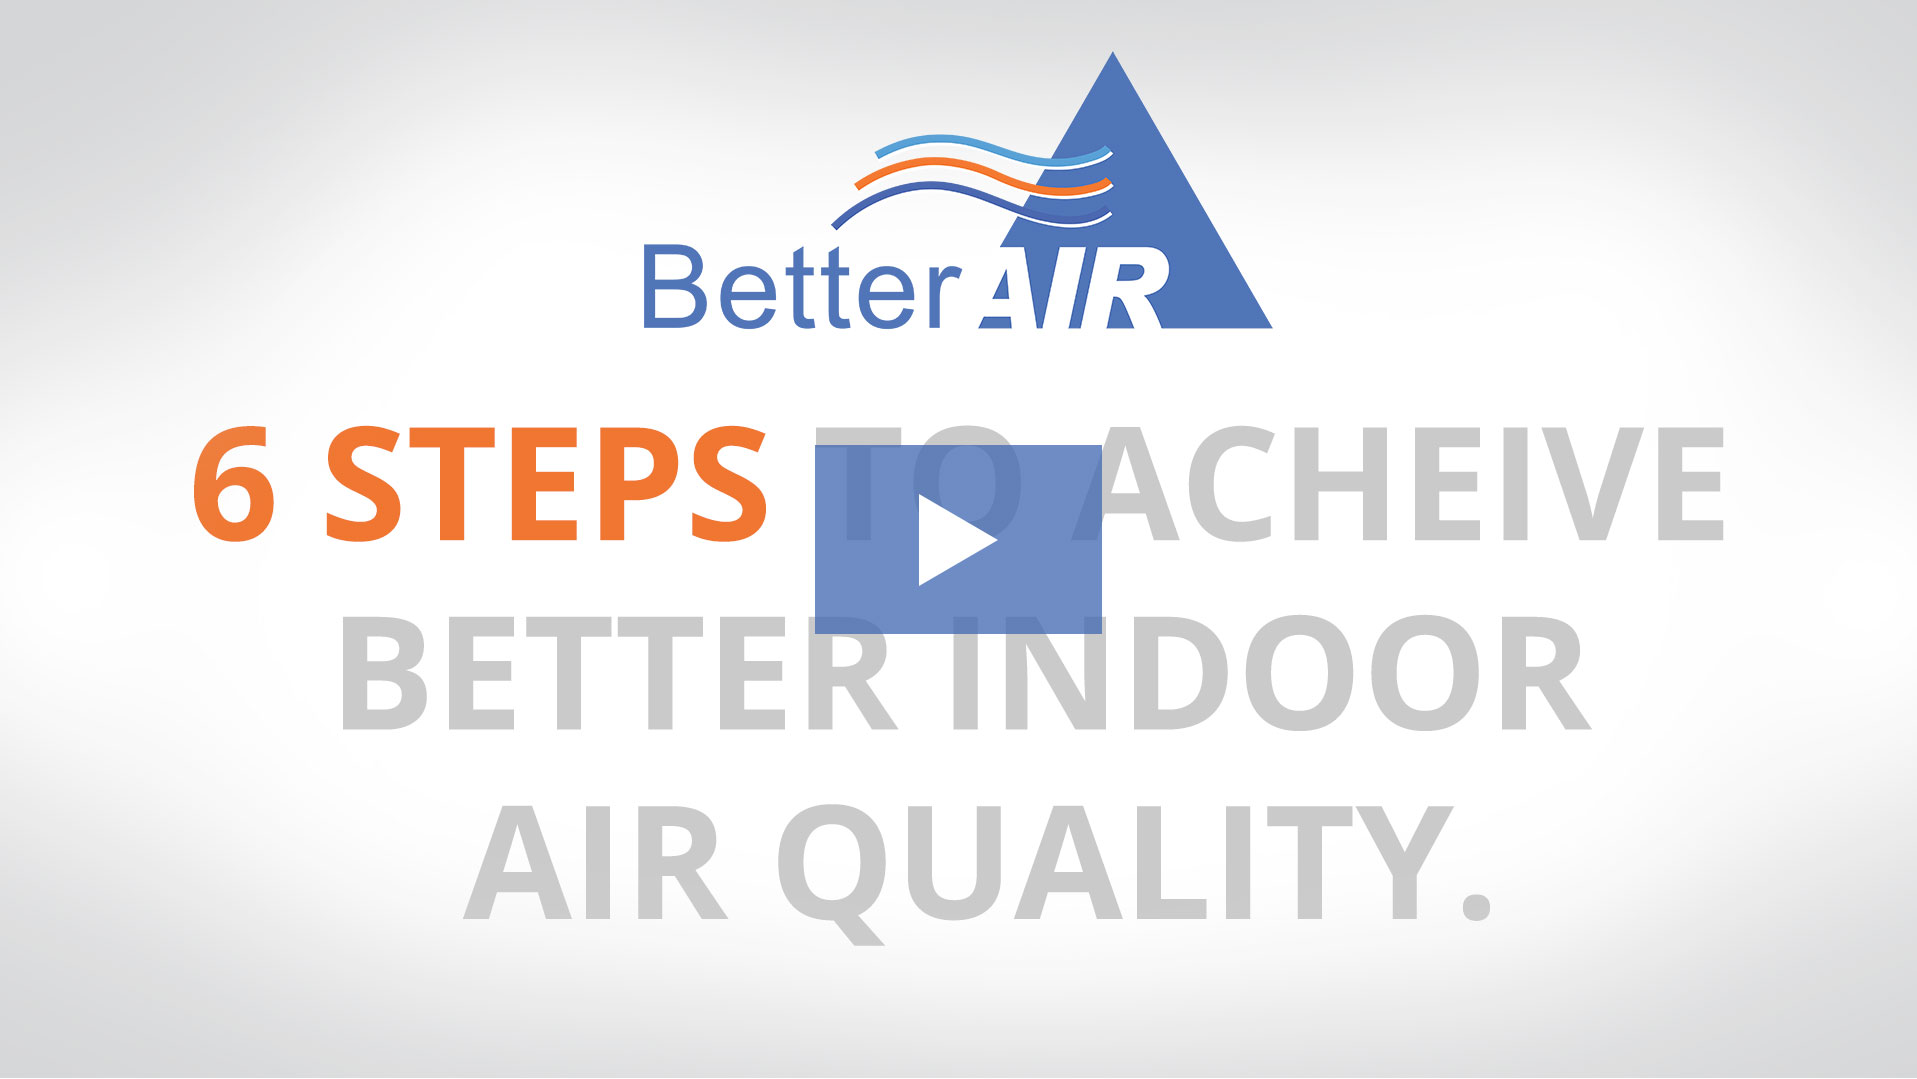 Video: Better Air's 6 step process for a cleaner and more efficient home HVAC system.